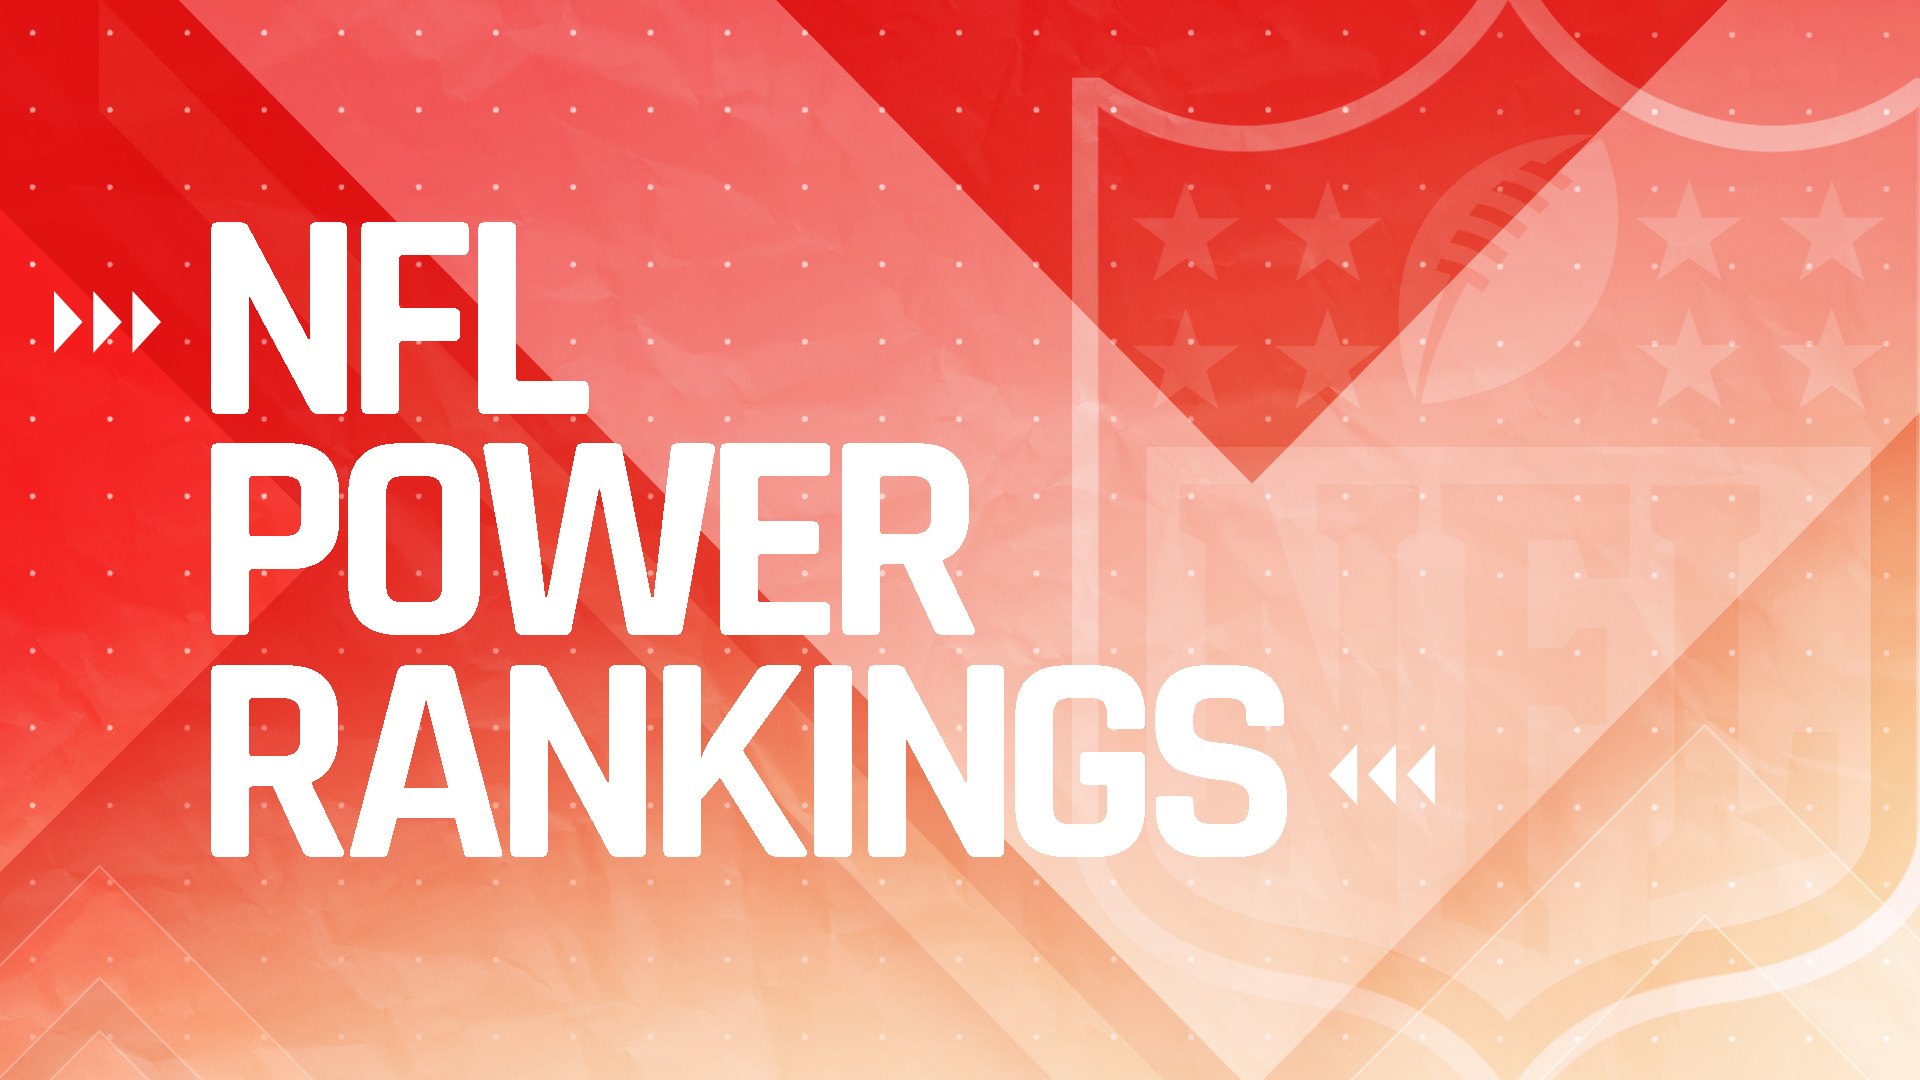 NFL power rankings: Bills, Cowboys, Chargers serious contenders; Chiefs, 49ers drop for Week 6